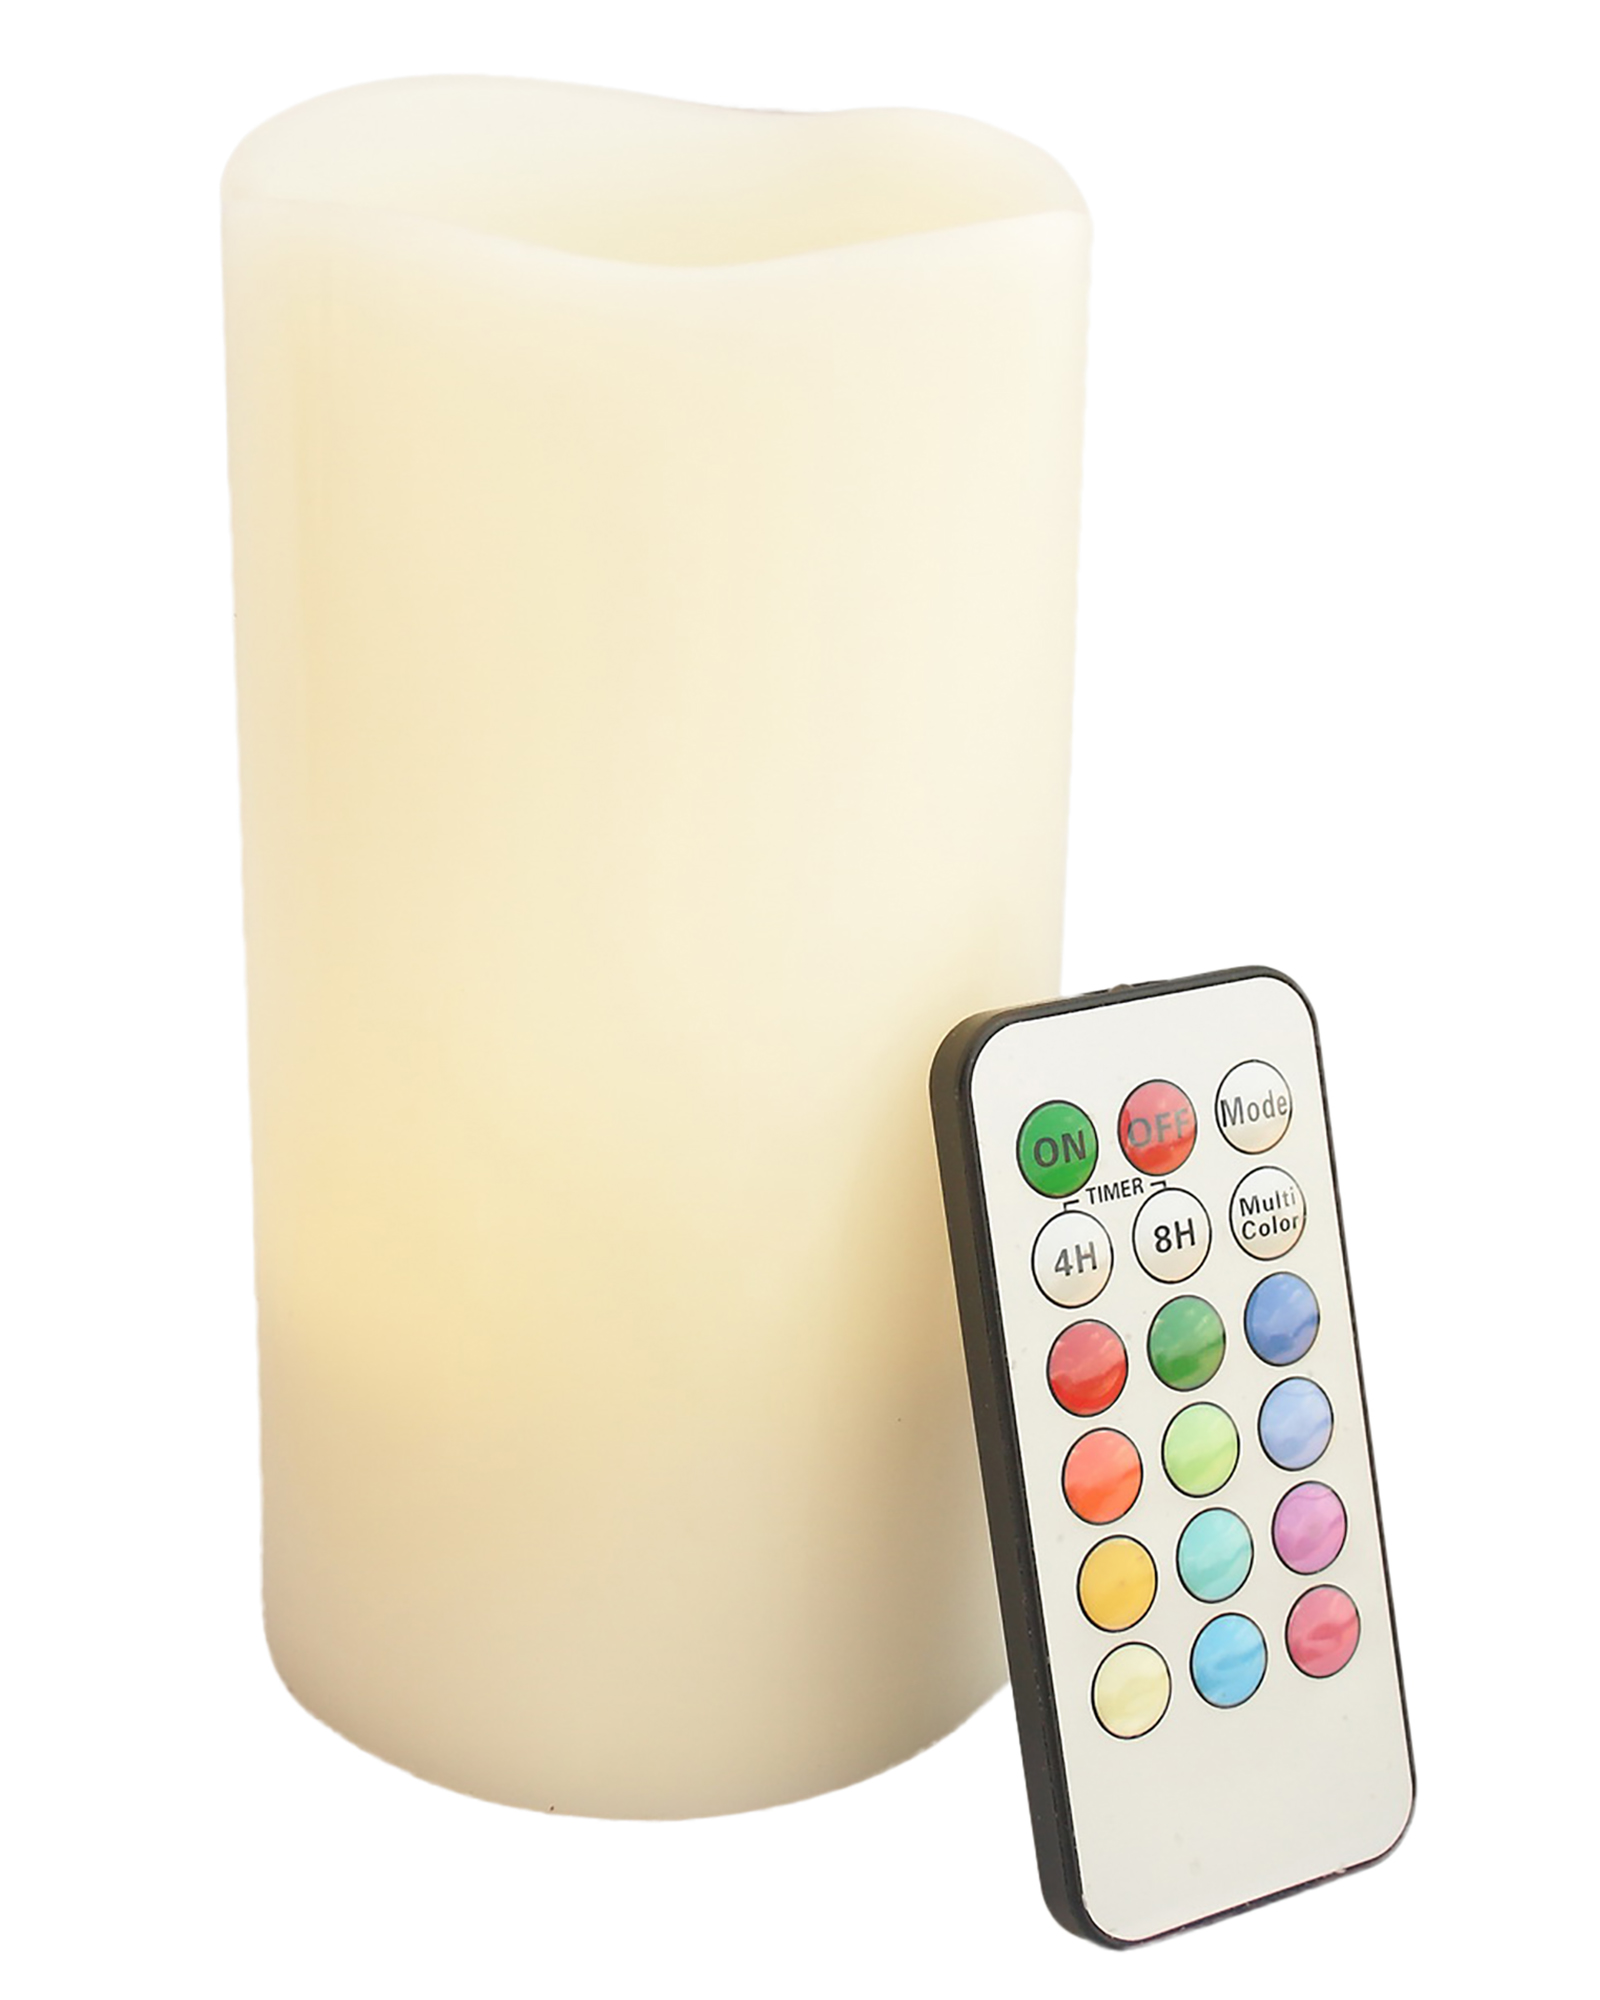 Round Melted Edge Remote Controlled Multi Color Changing Flameless Wax Pillar Candle - 6 Inch Tall